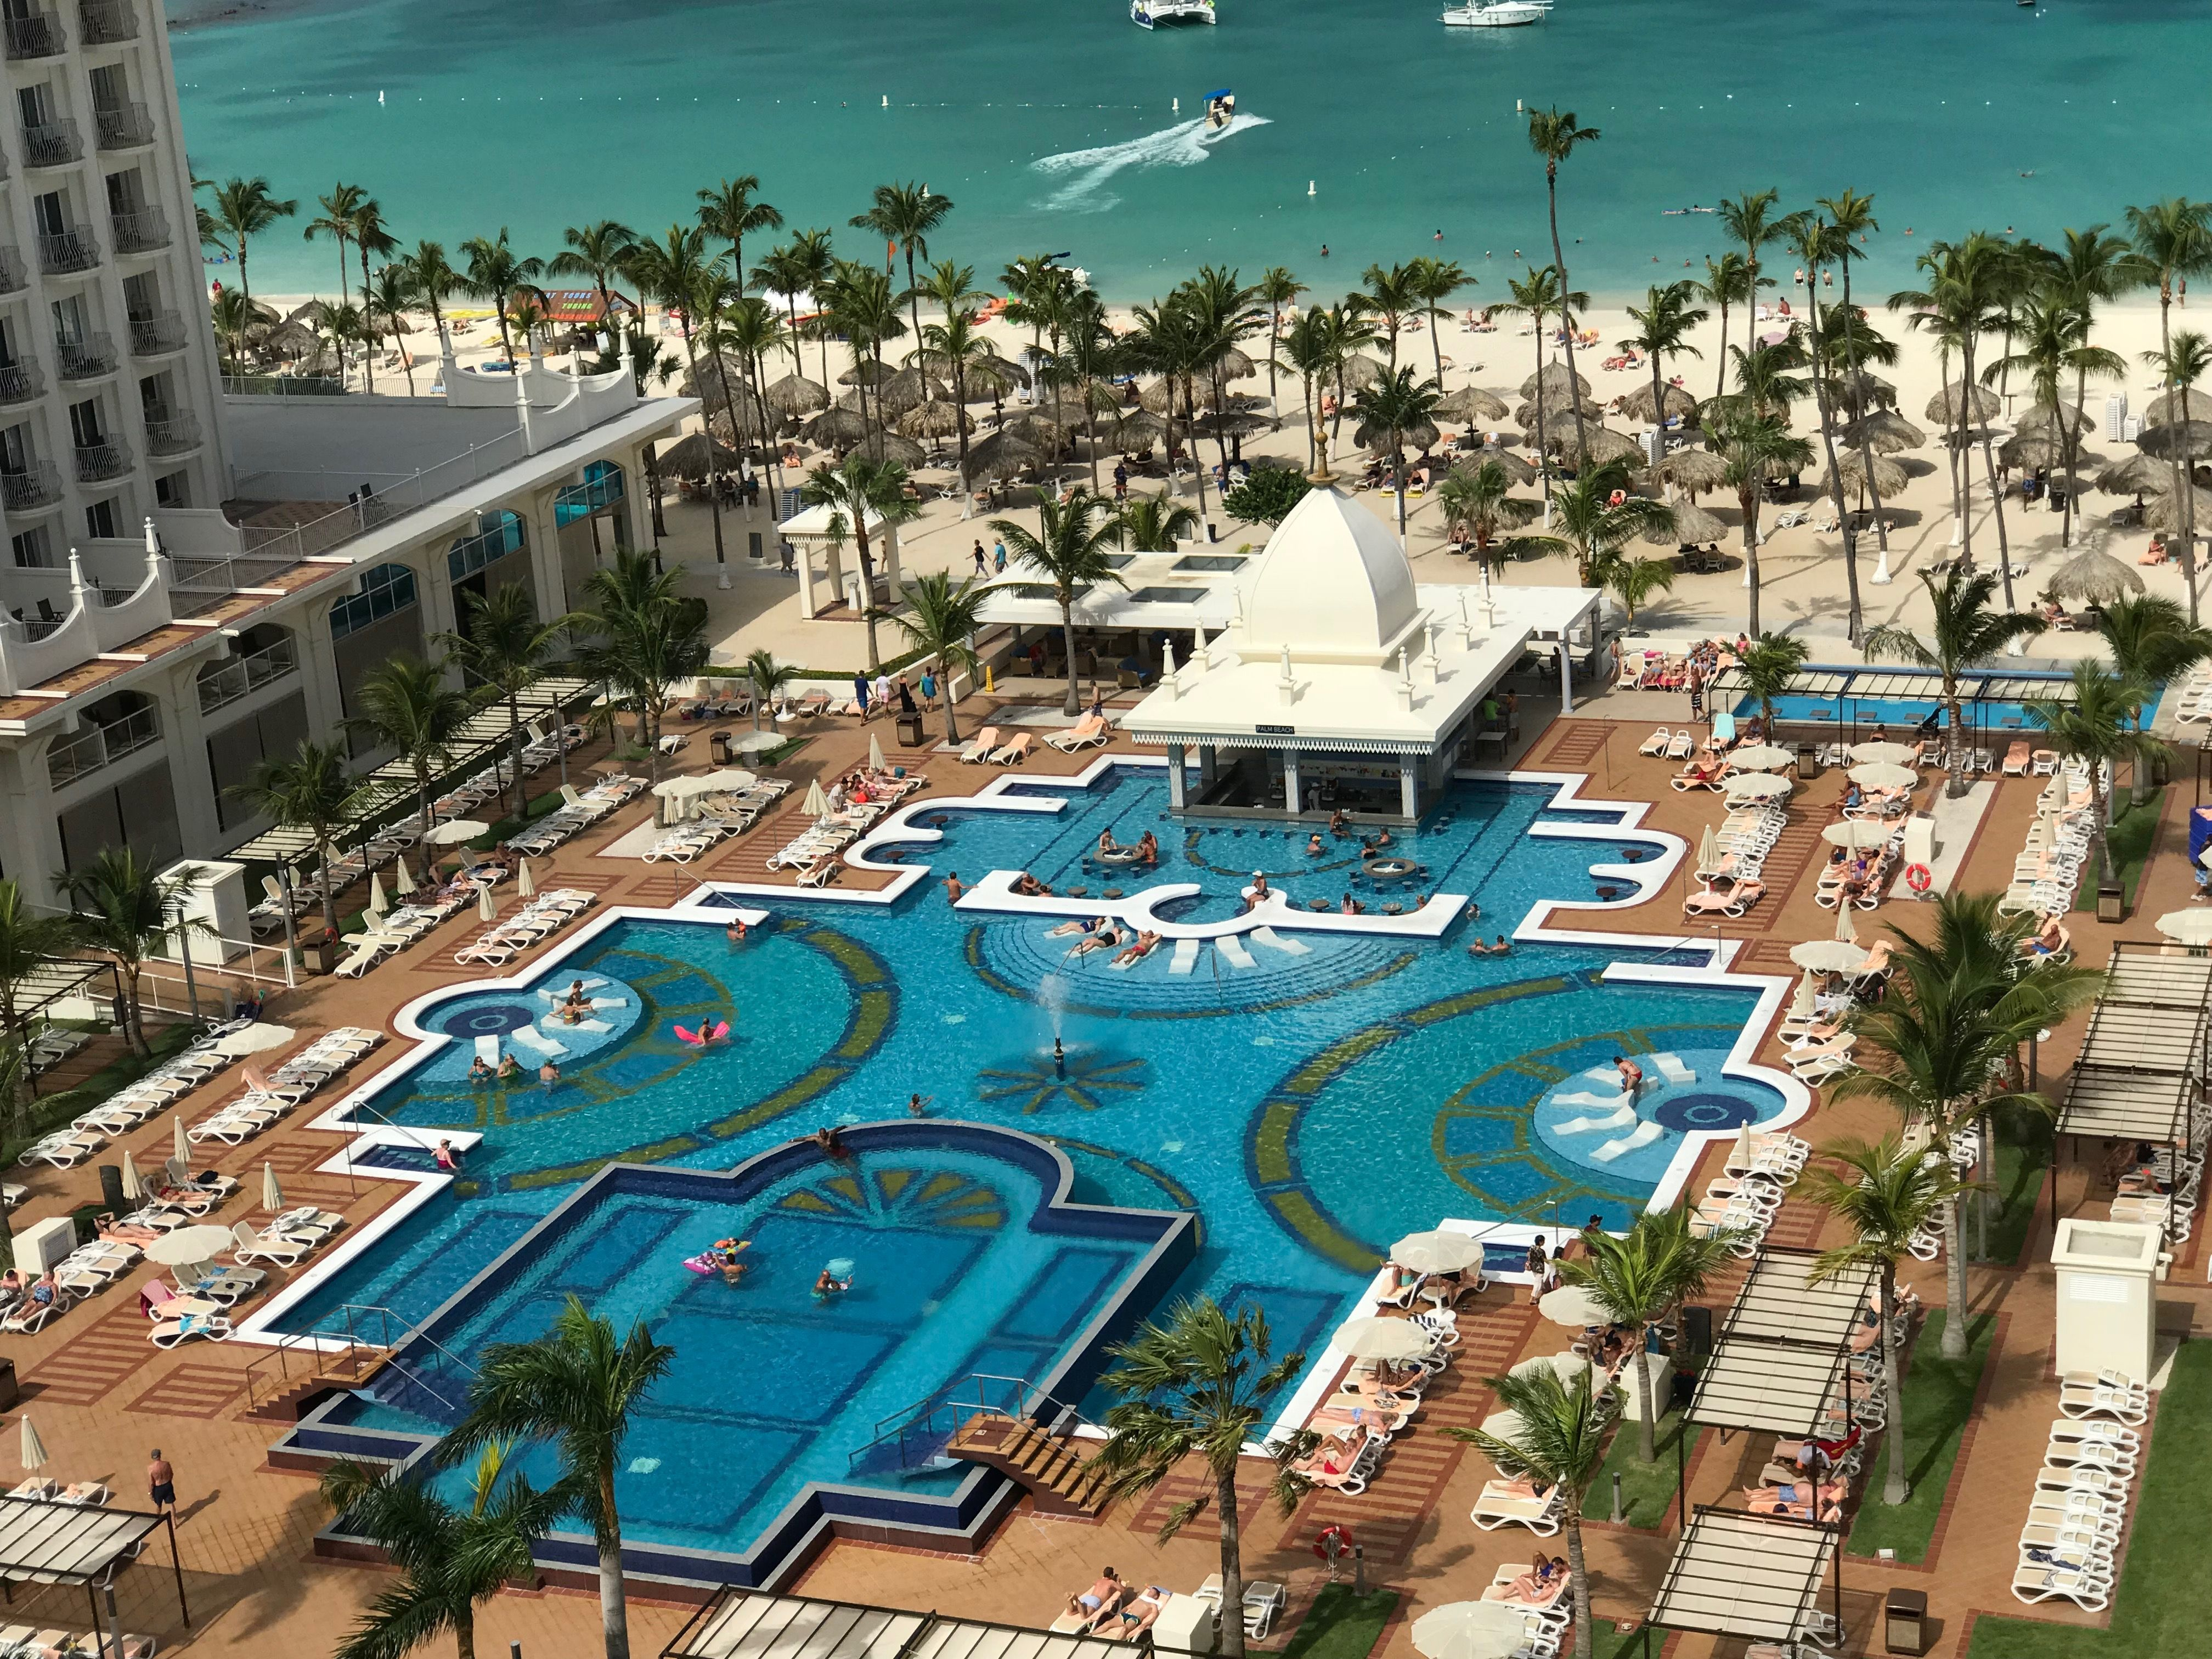 Riu Palace Aruba popular choice for destination